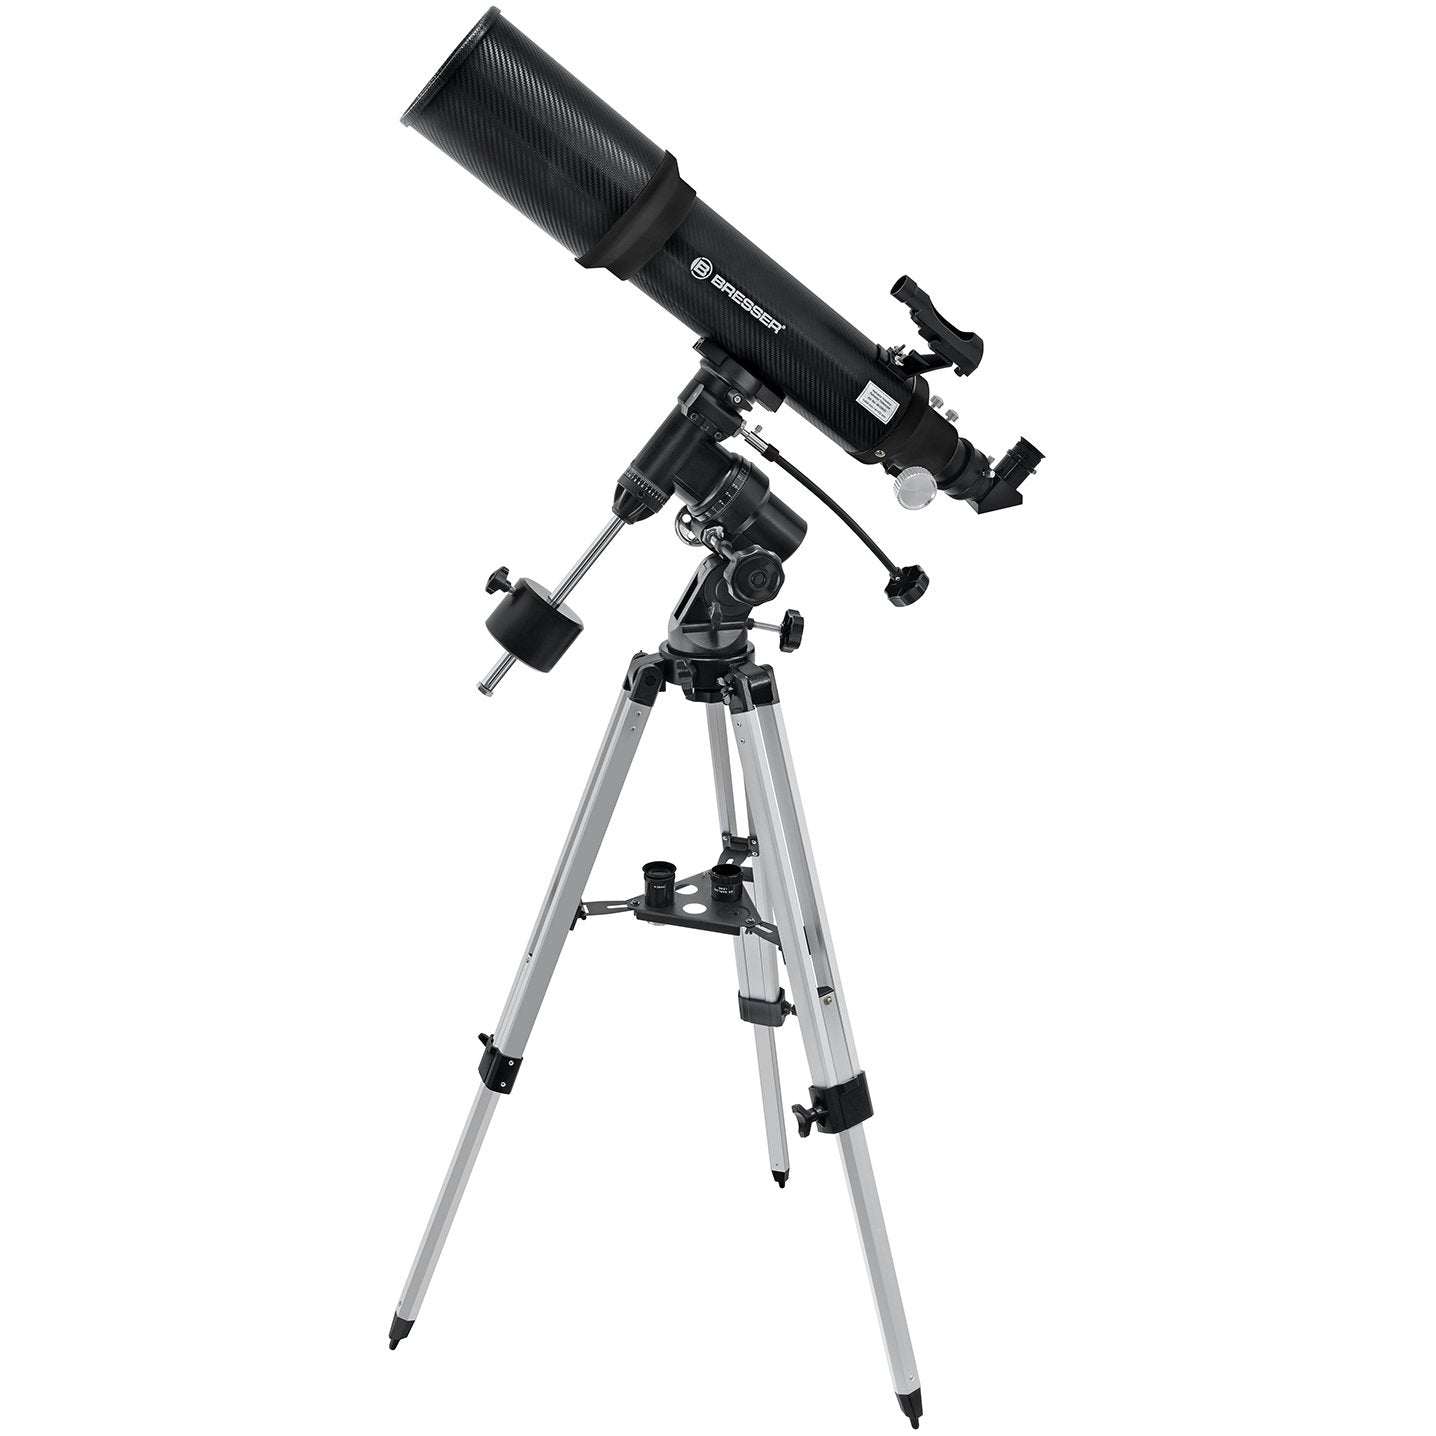 Bresser AR-102 102mm EQ-3 AT-3 Refractor Telescope